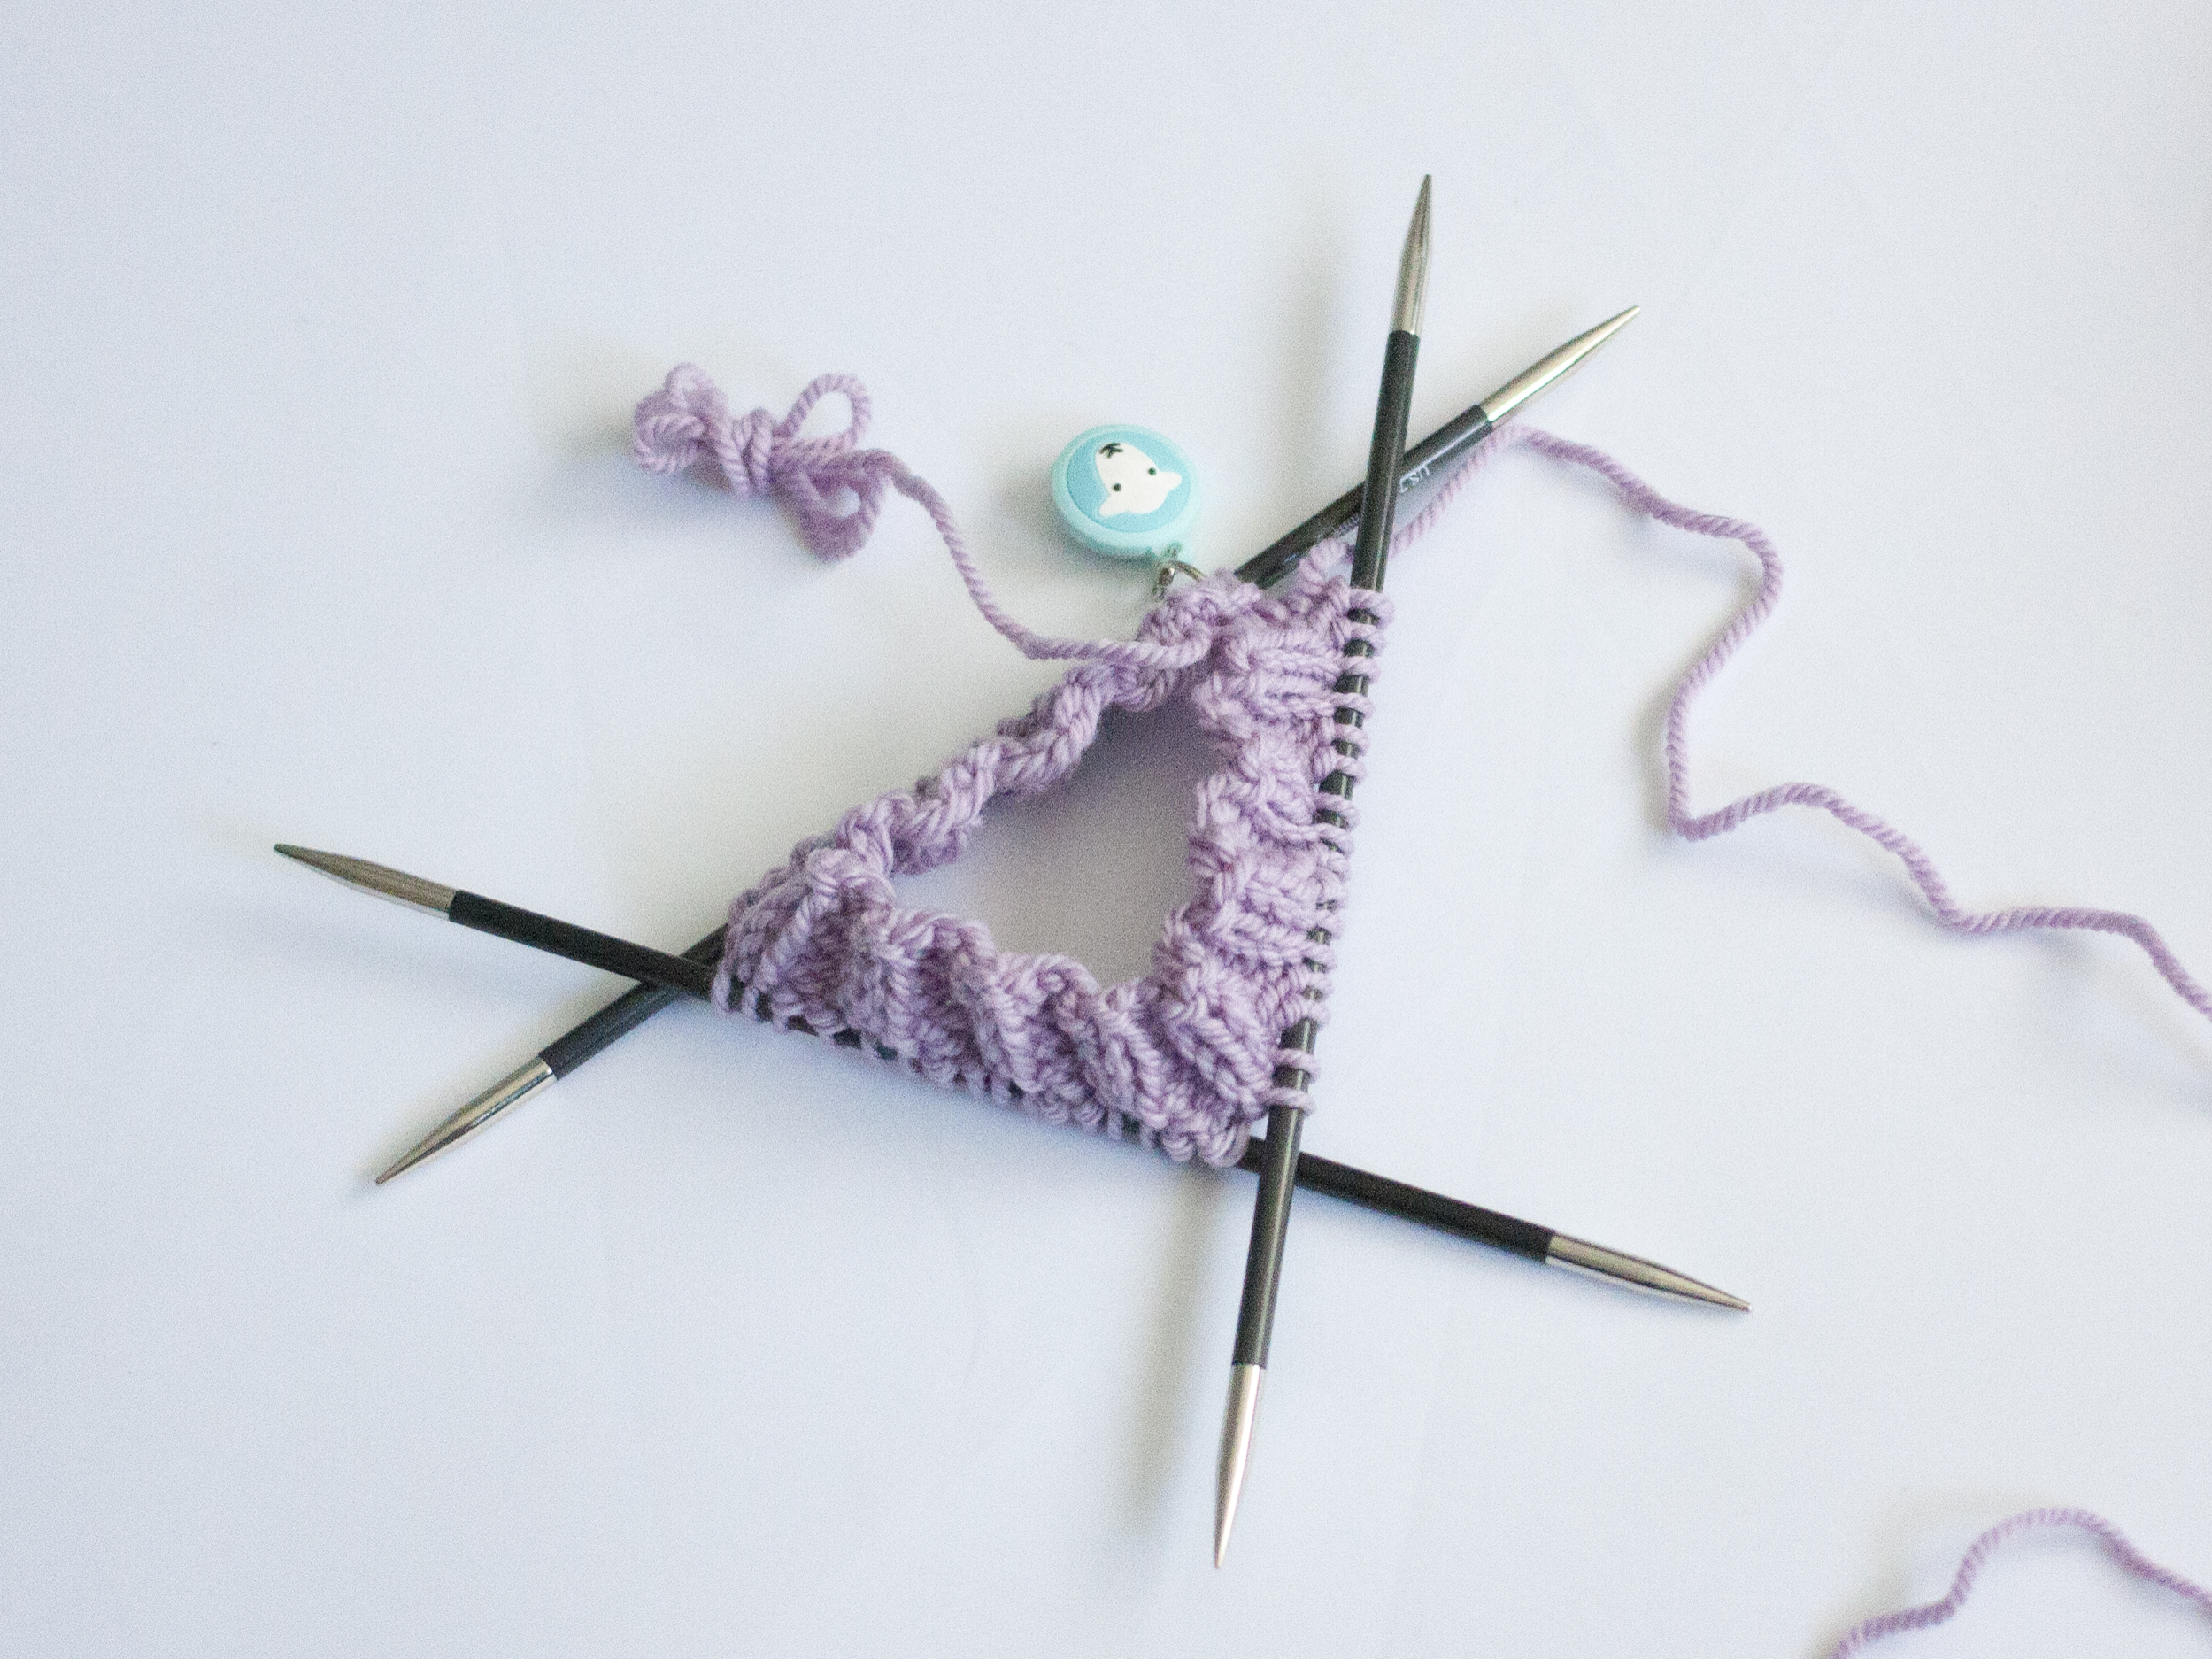 five rounds of knitting